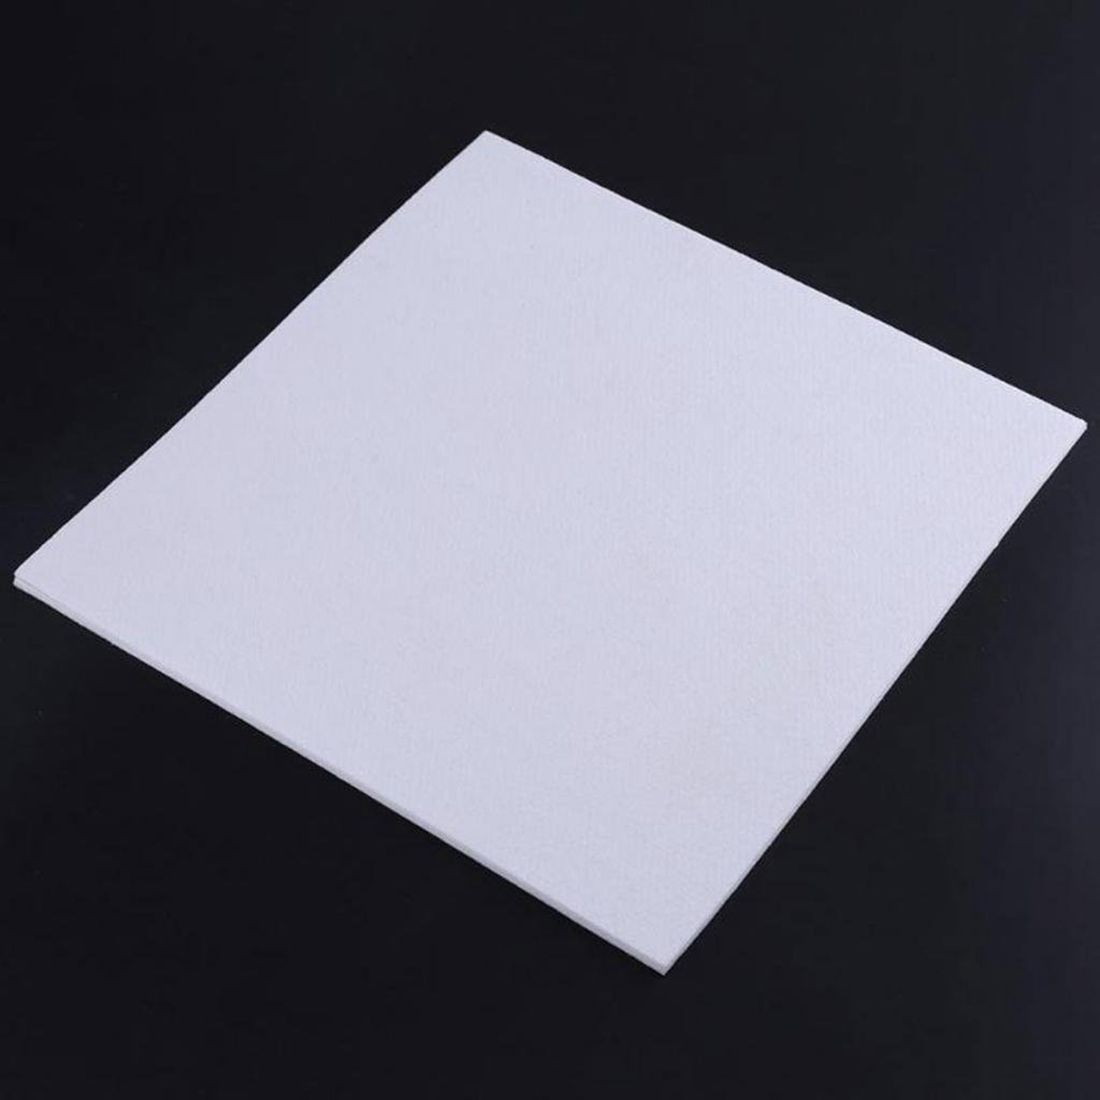 4pcs Hotbed Thermal Insulation Cottons 300*300*3 mm heated bed insulation cotton for 3D Printer heated bed